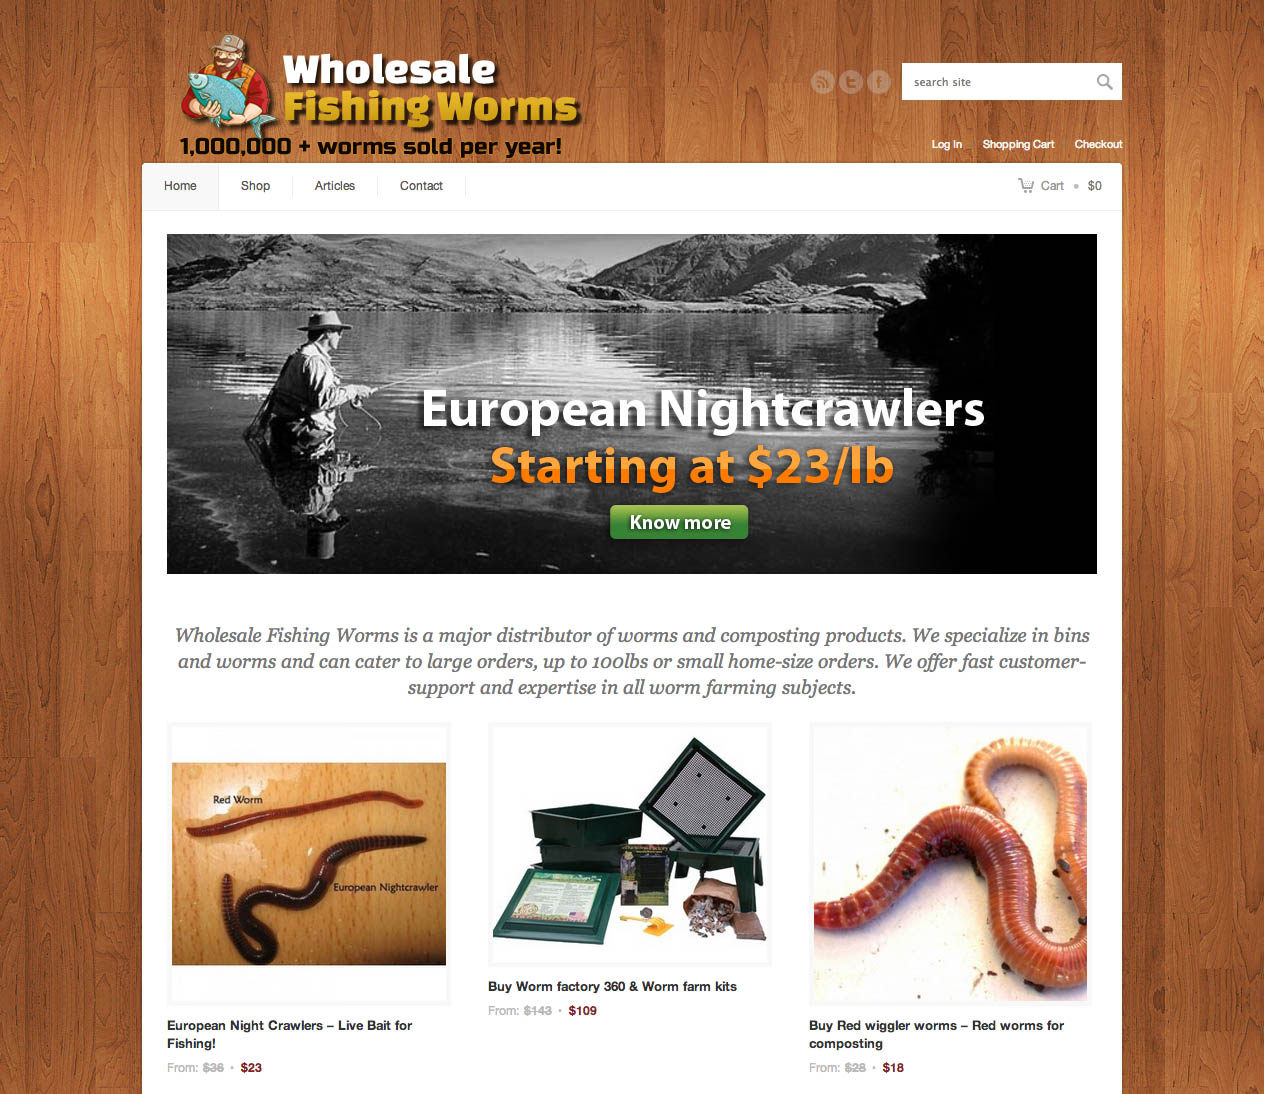 Whole sale fishing worms